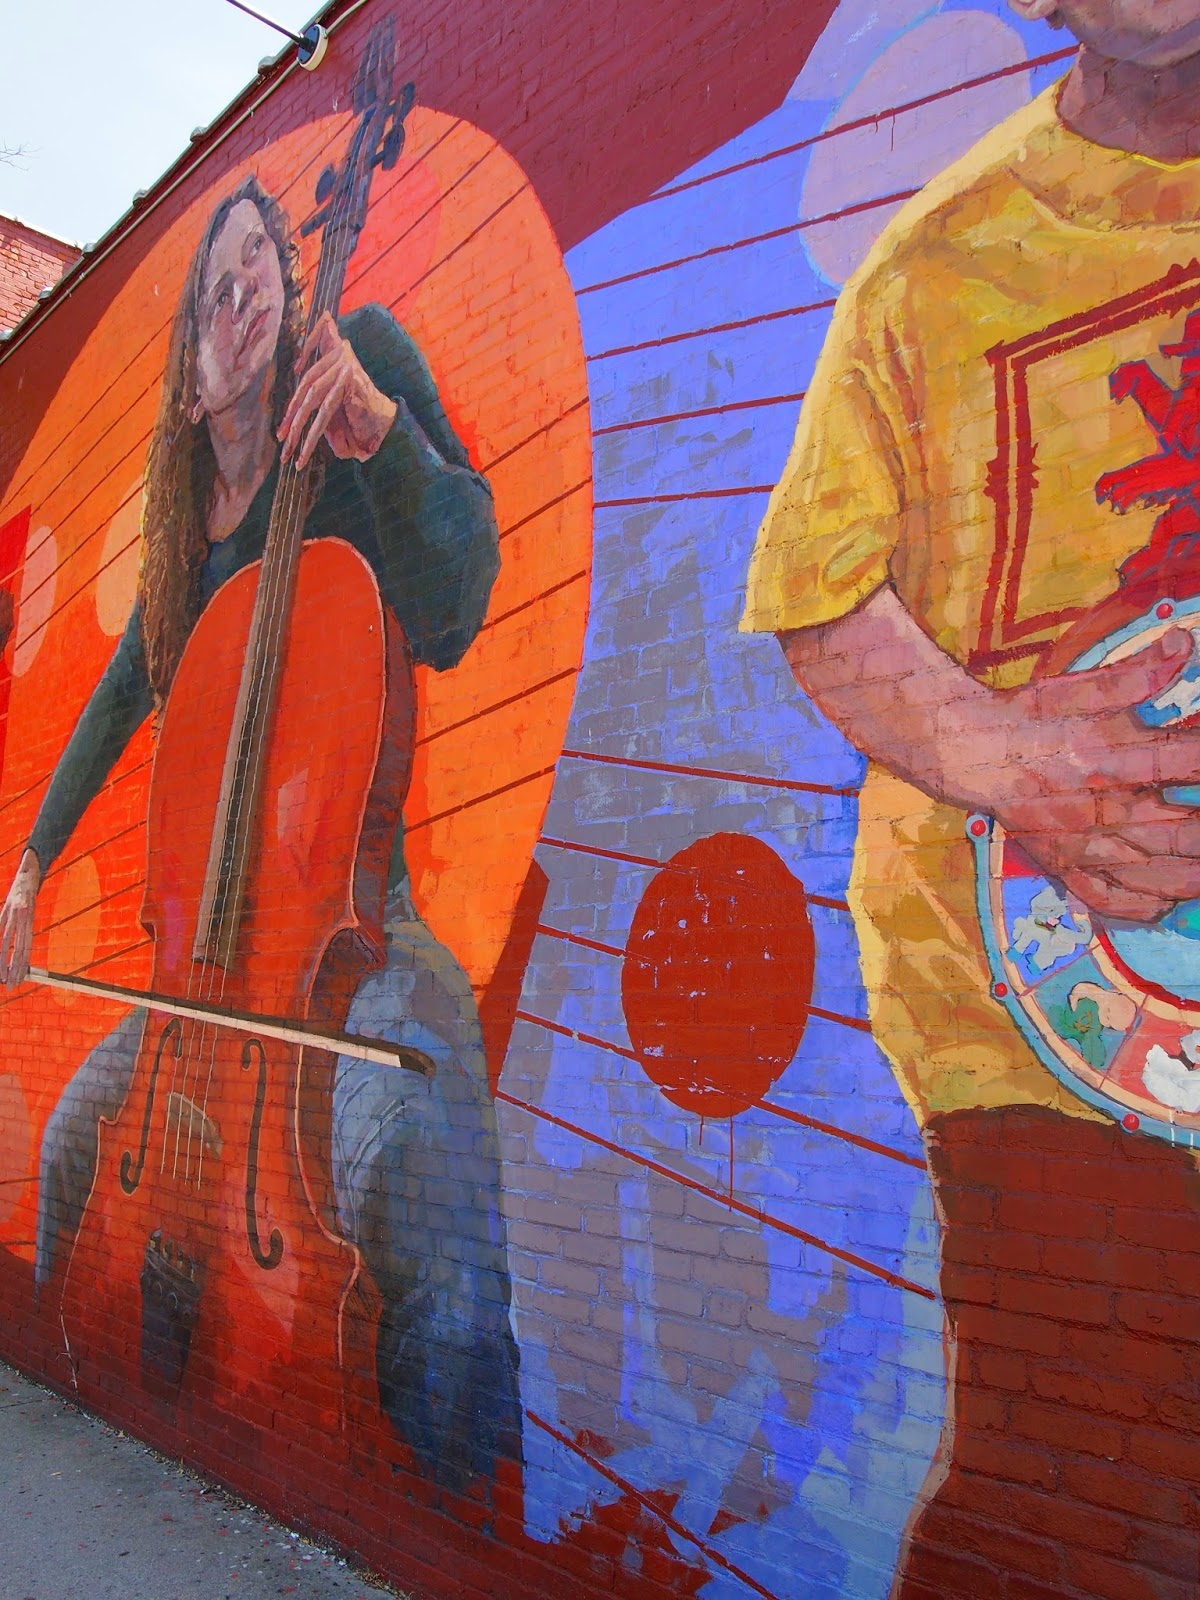 A mural of music in New London, Connecticut